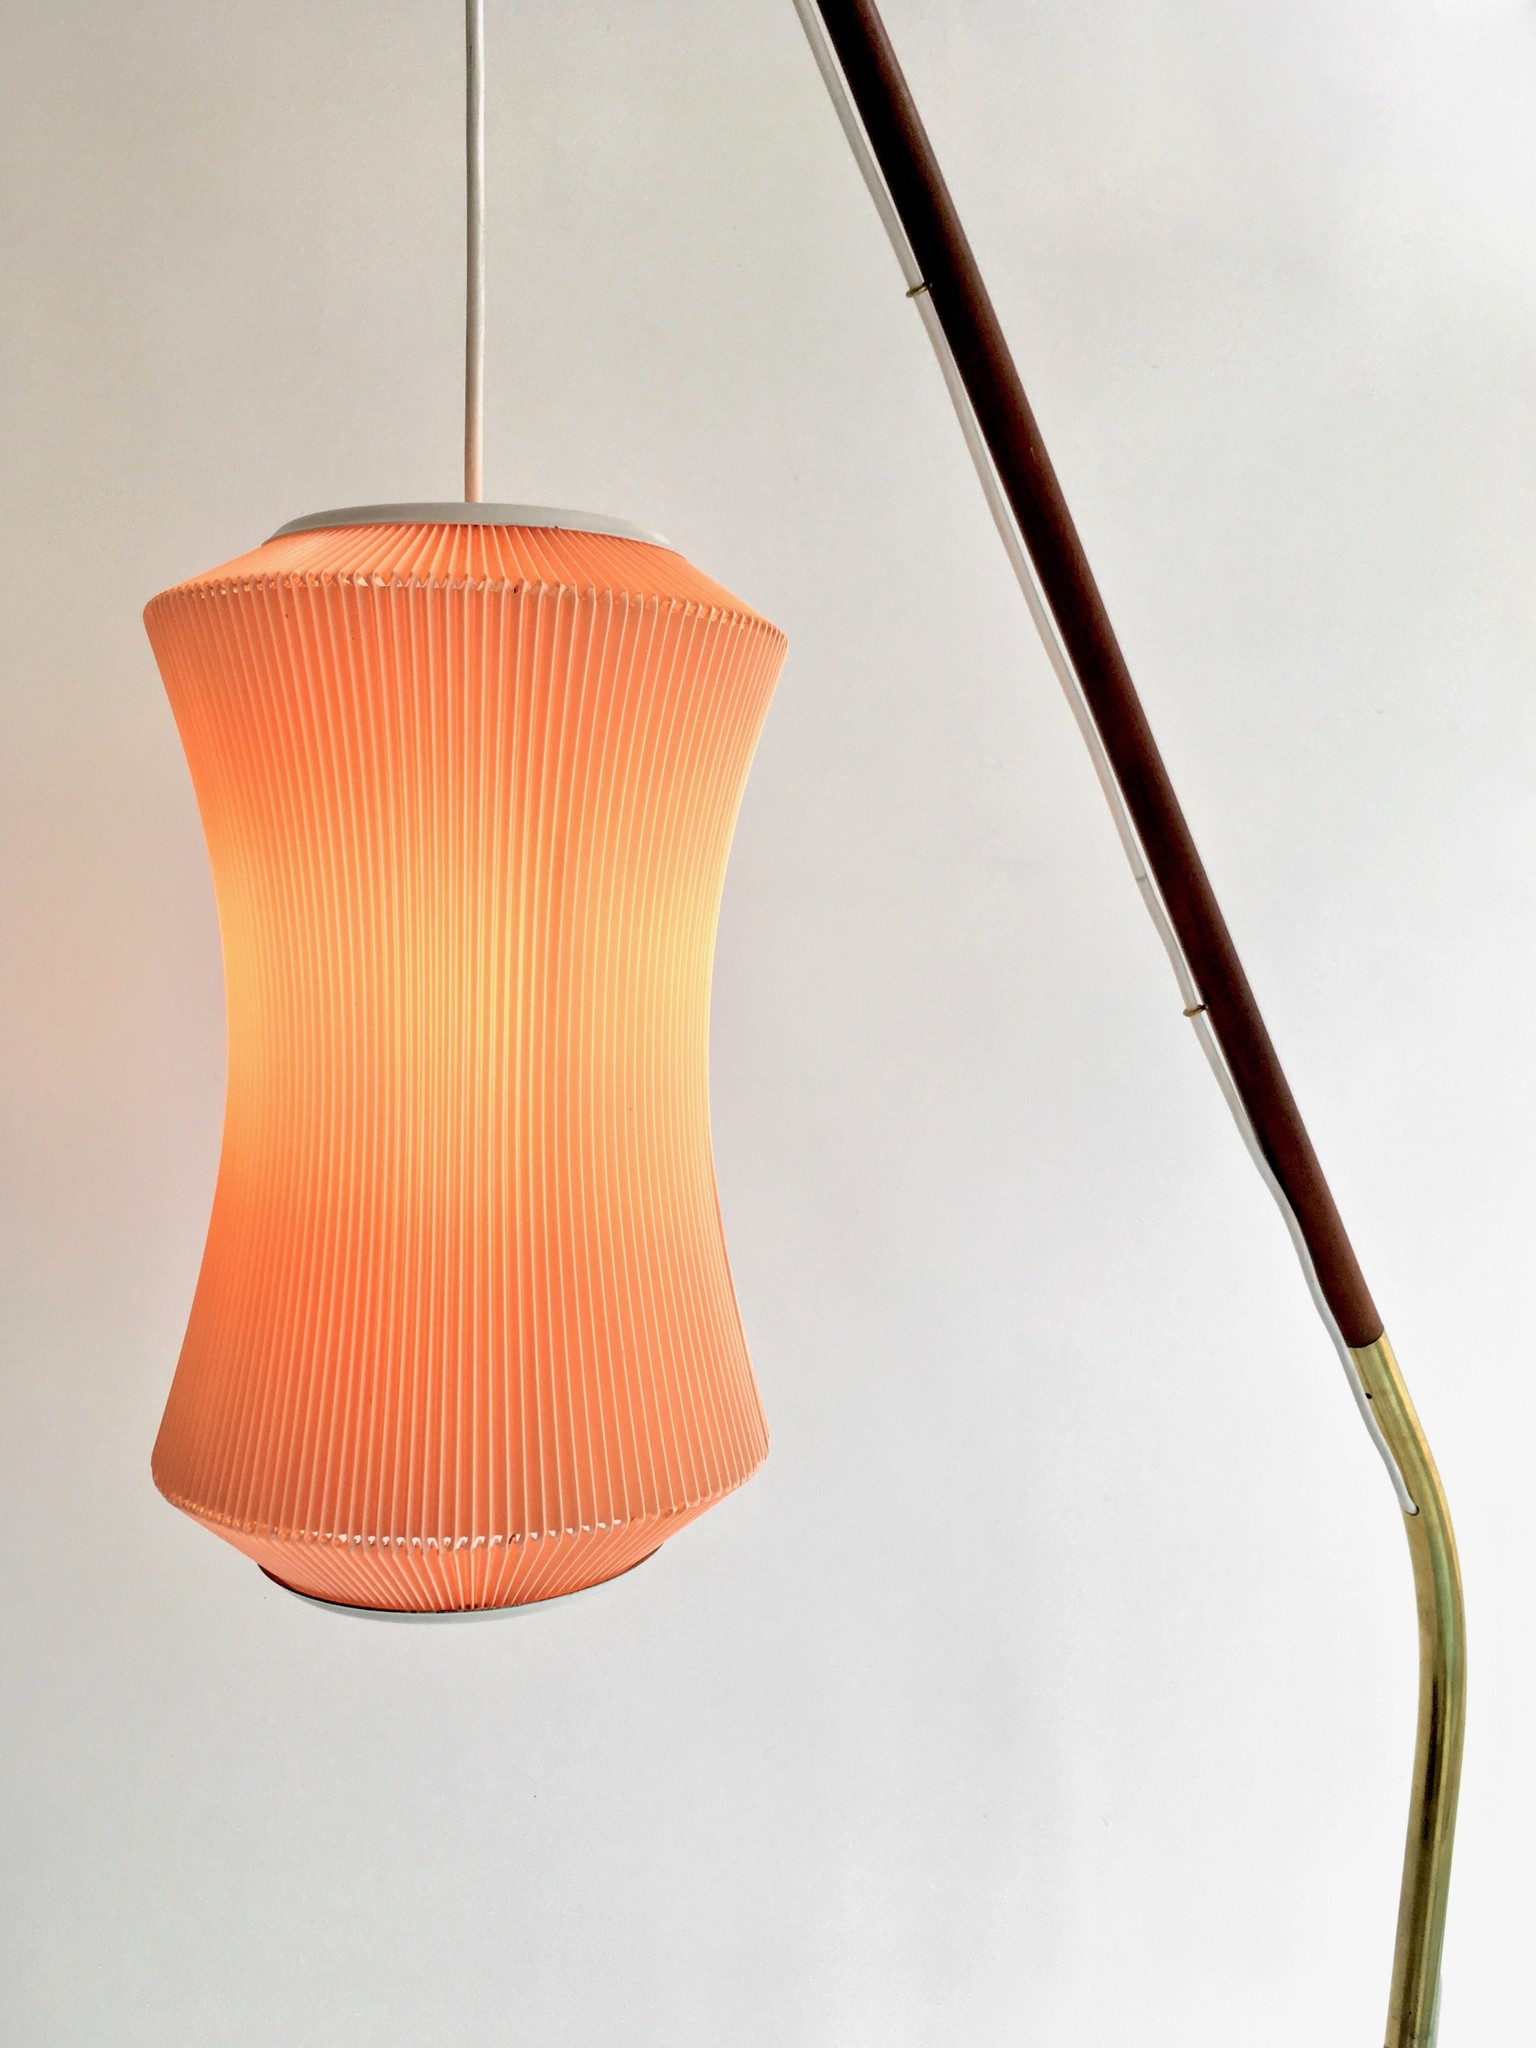 Fishing Pole Lamp by Svend Aage Holm Sørensen